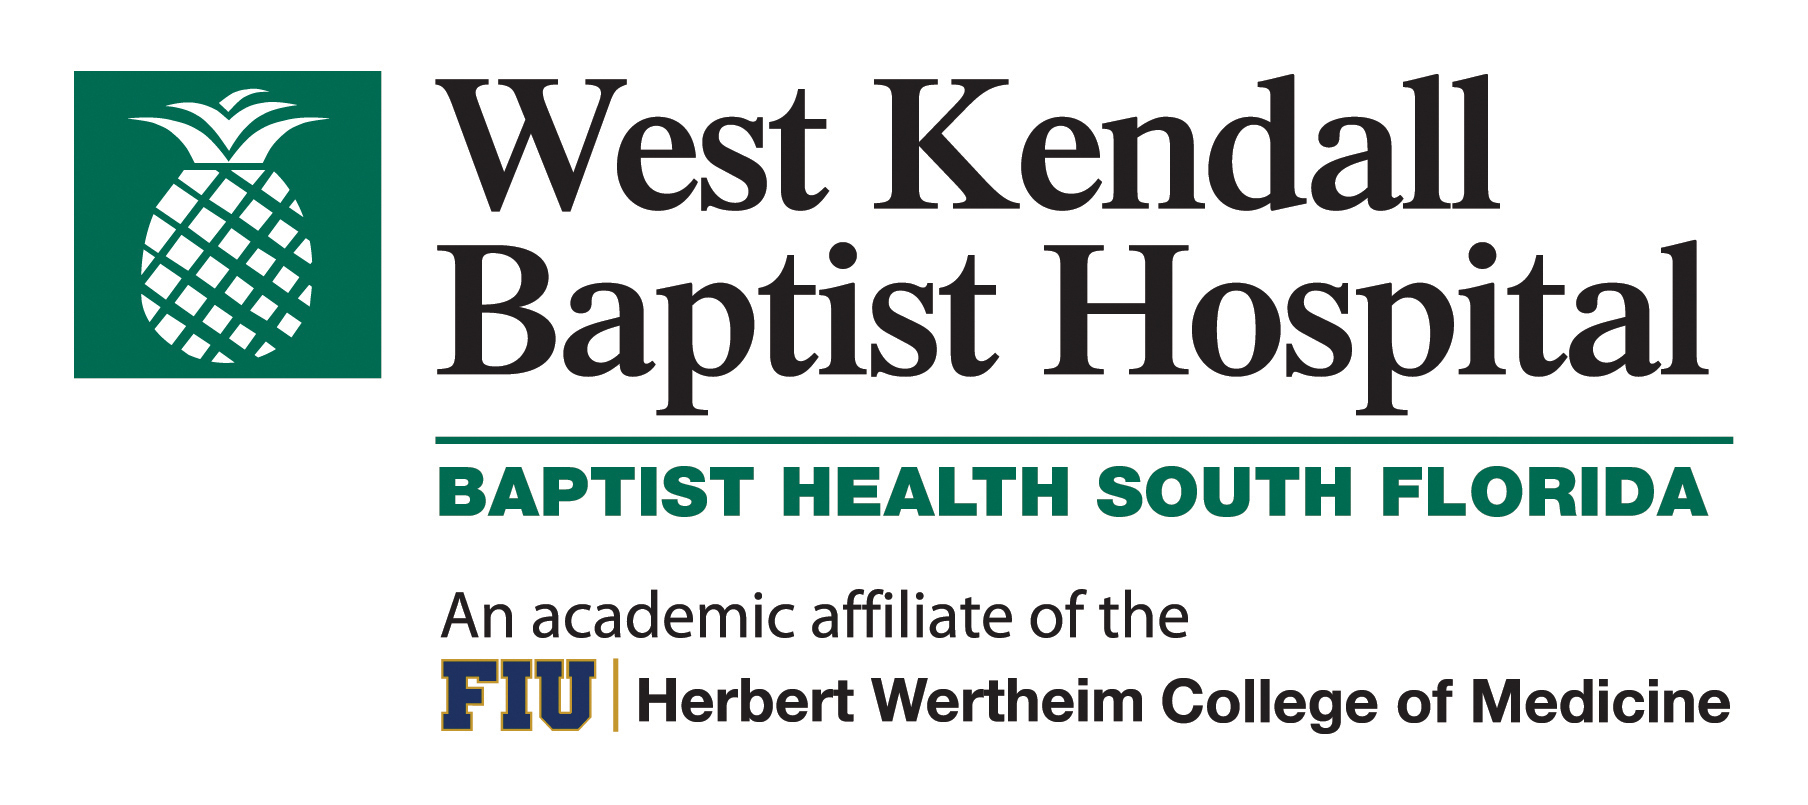 West Kendall Baptist Hospital First In The World To Scan Patients